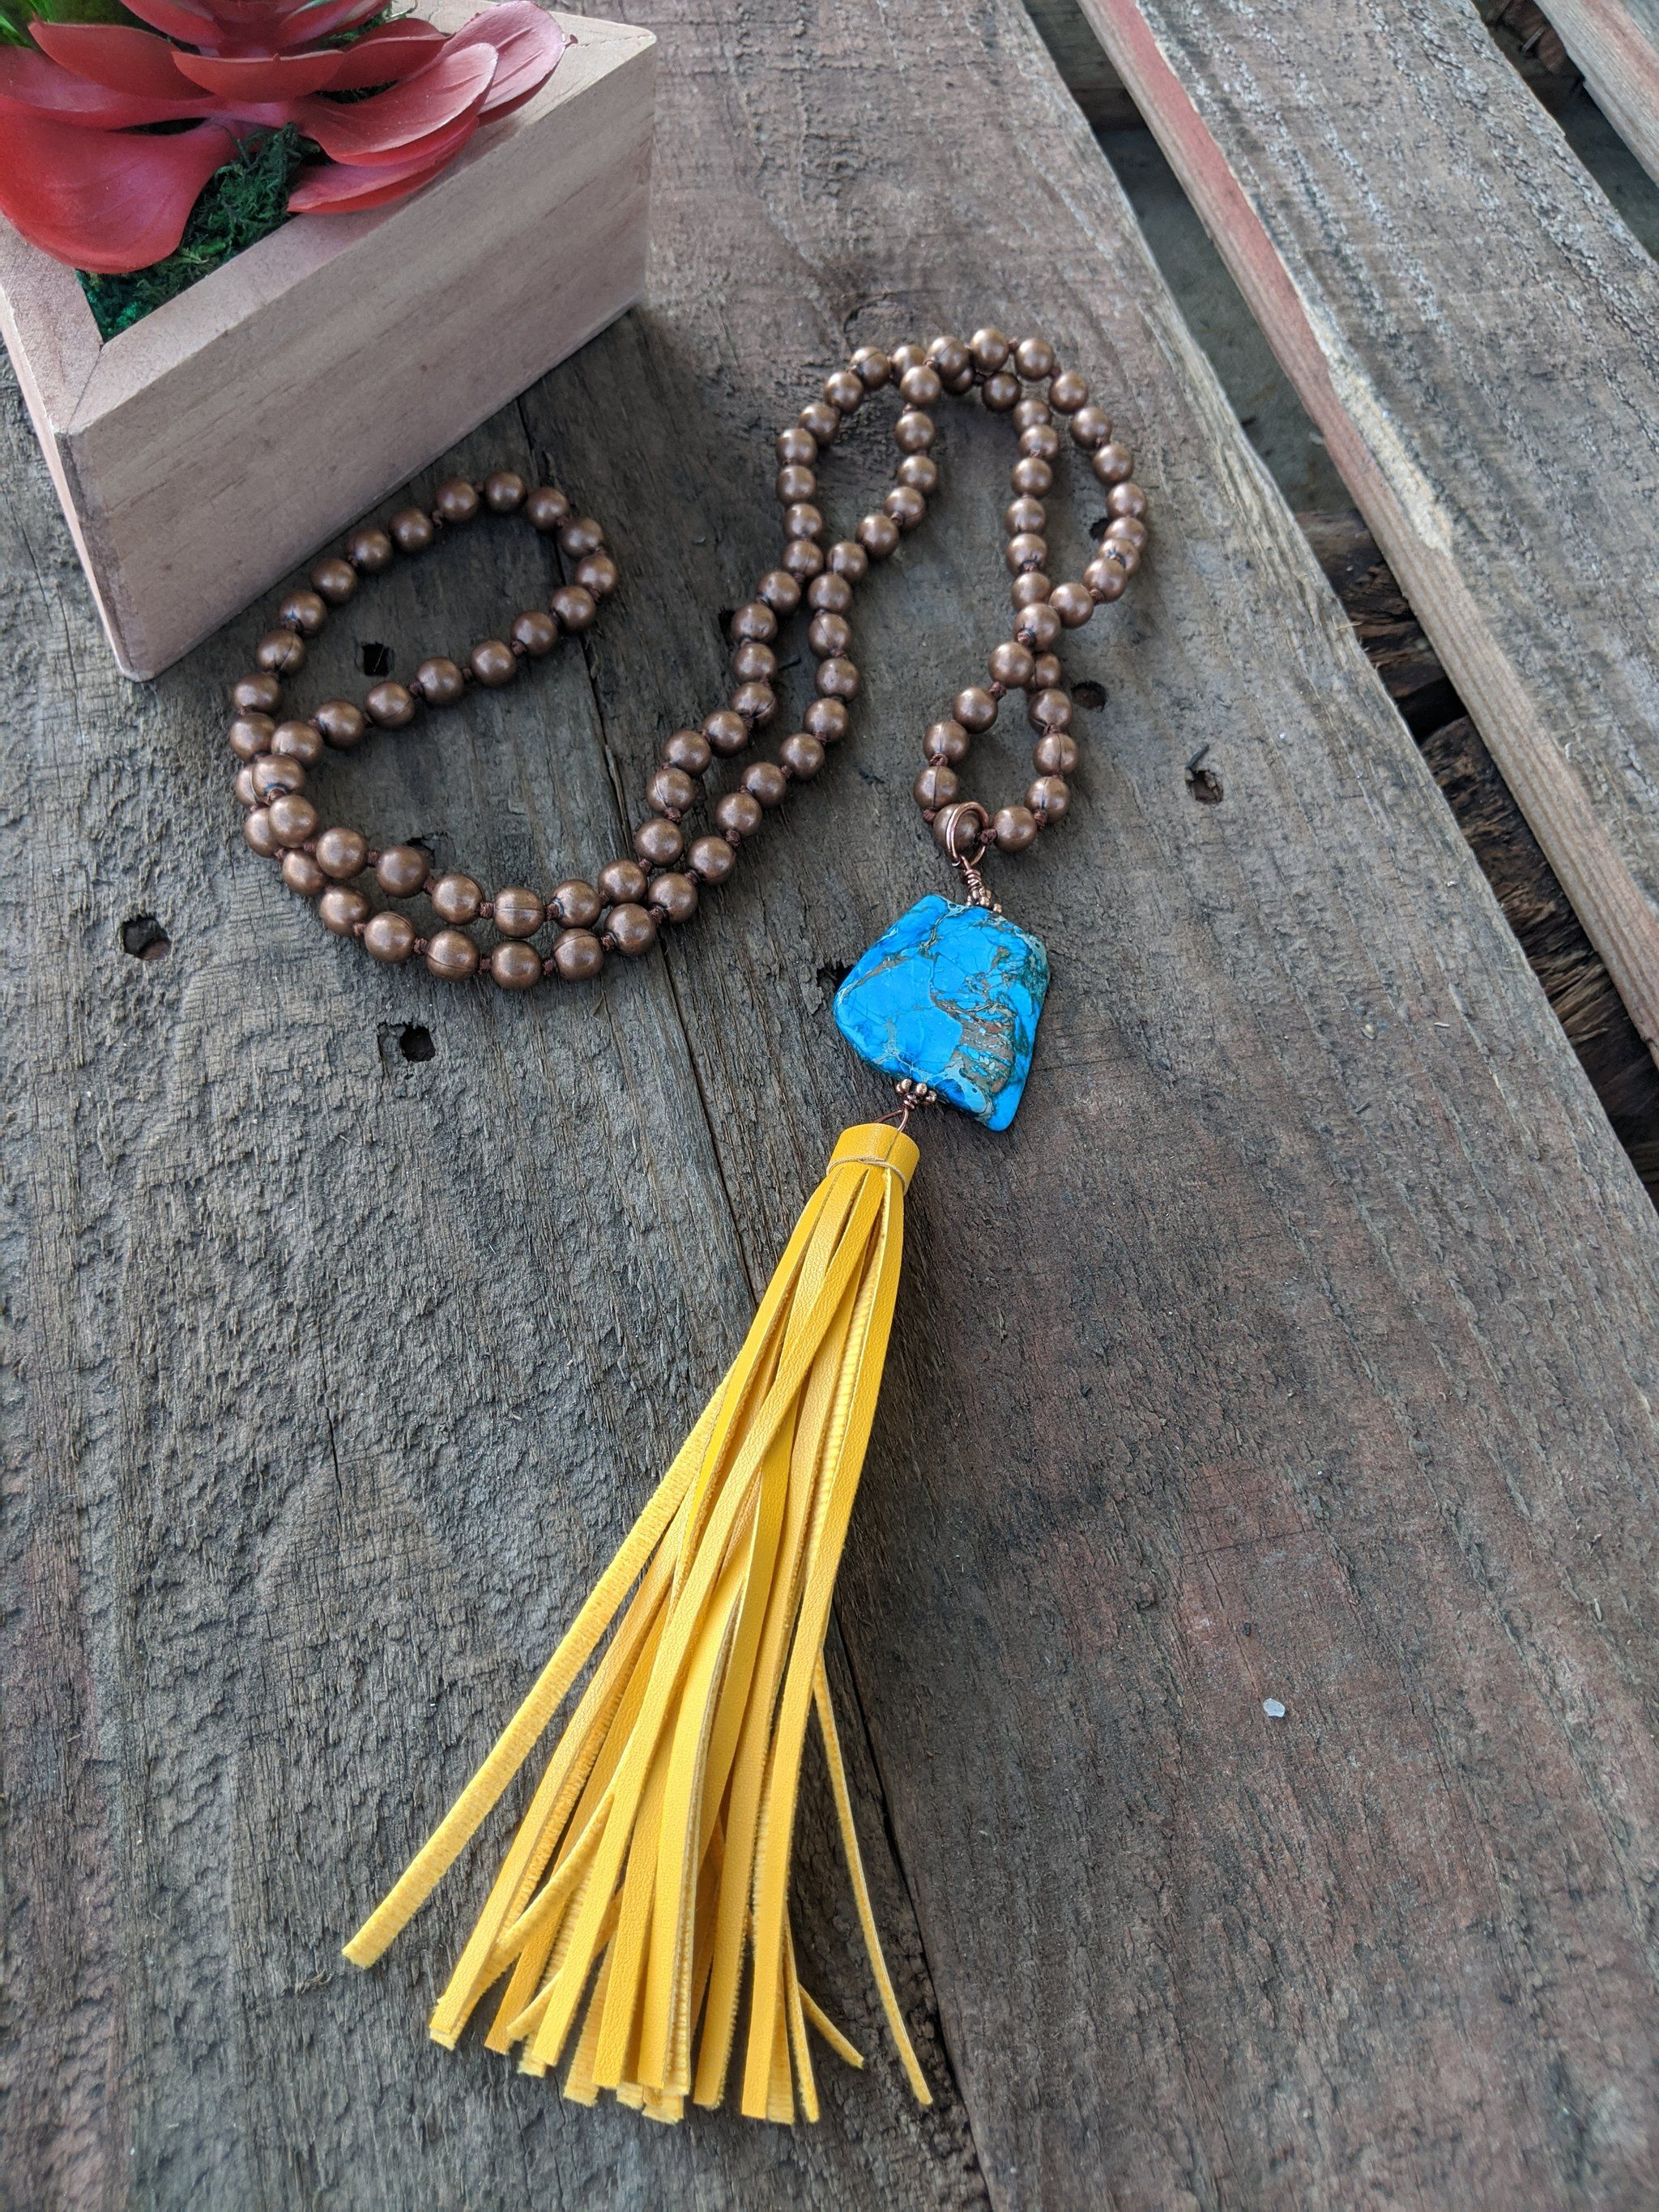 Copper with Turquoise Stone & Yellow Tassel Necklace